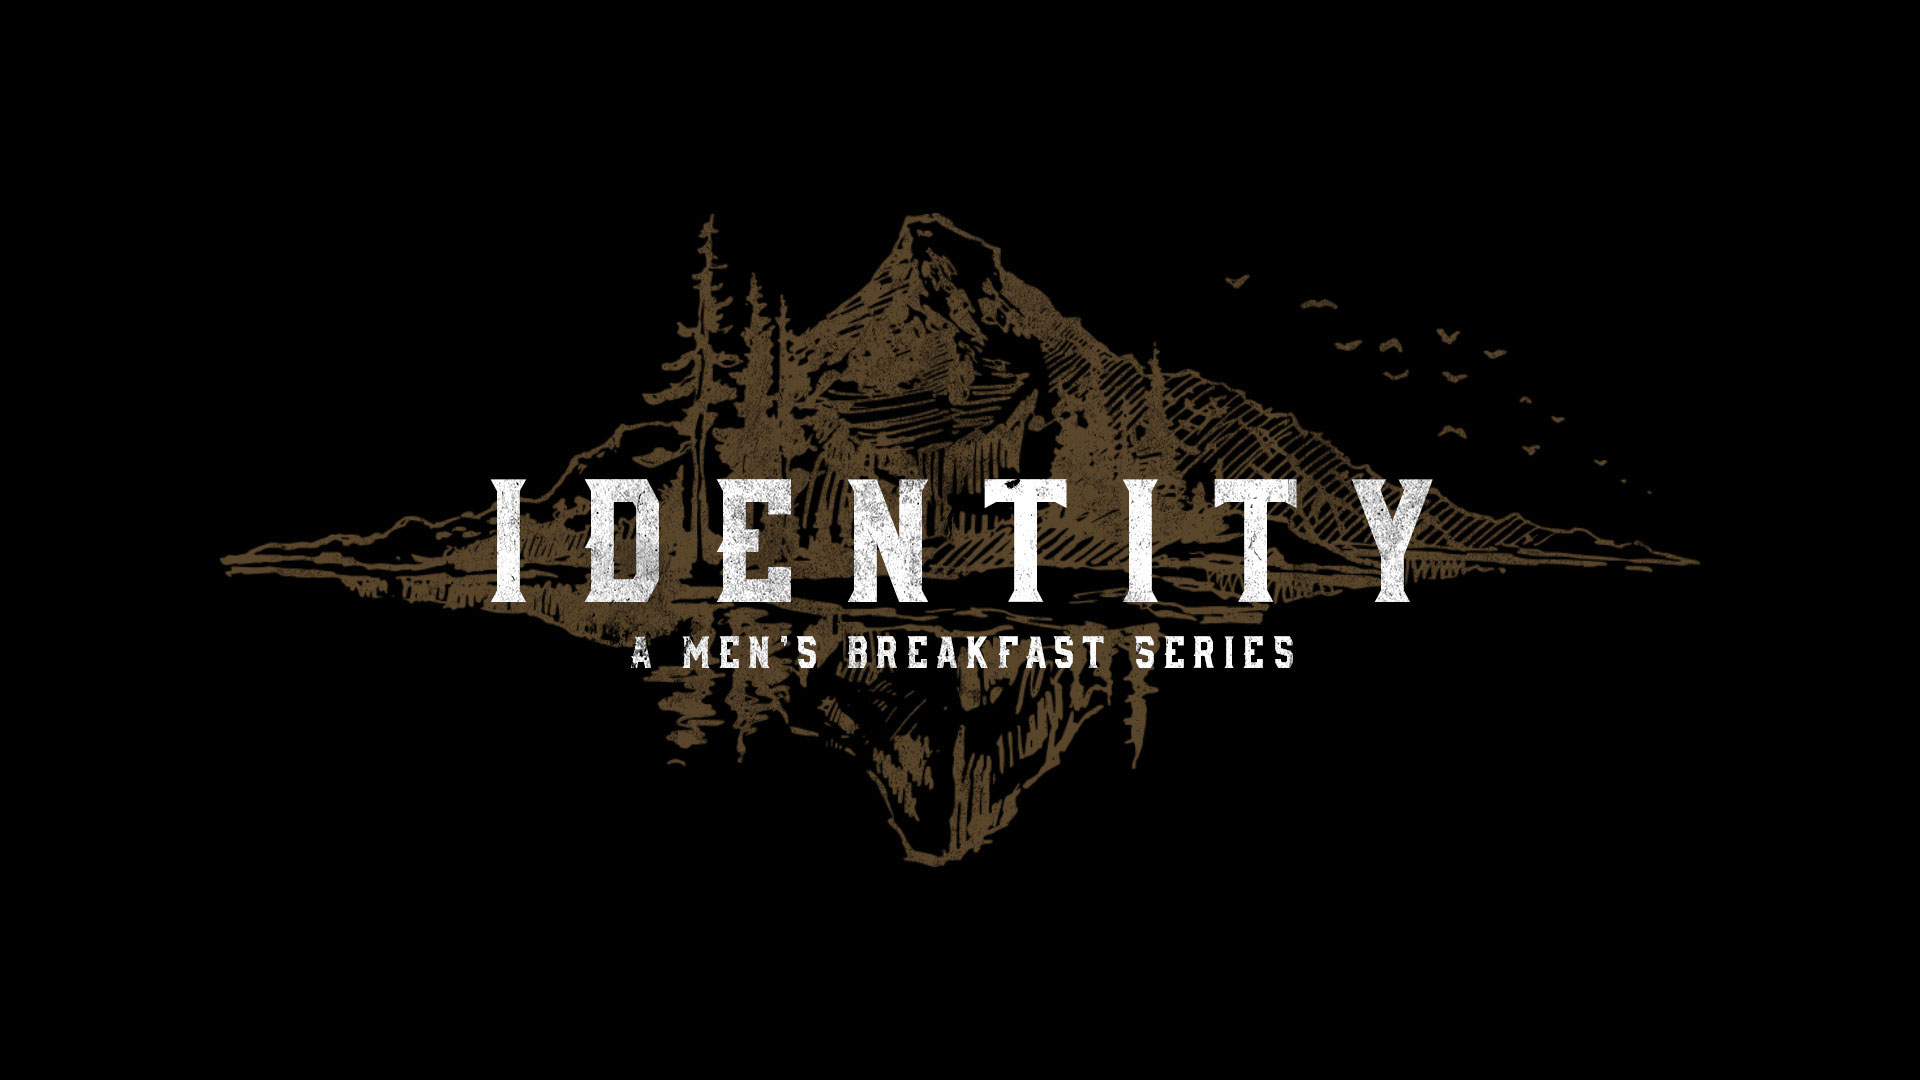 Series: Men's Breakfast Series: Identity